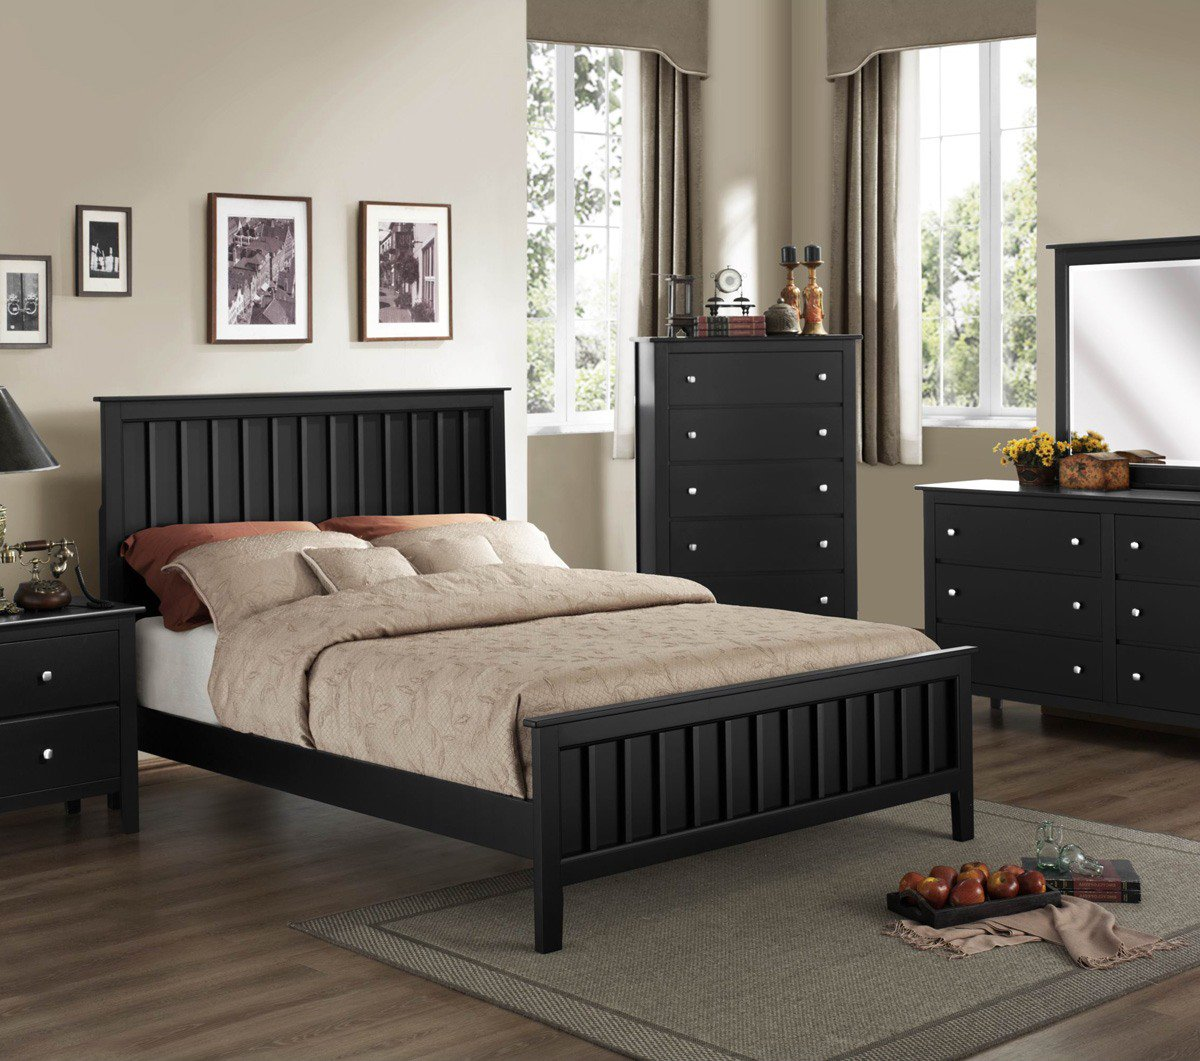 bedroom furniture sets big lots photo - 1